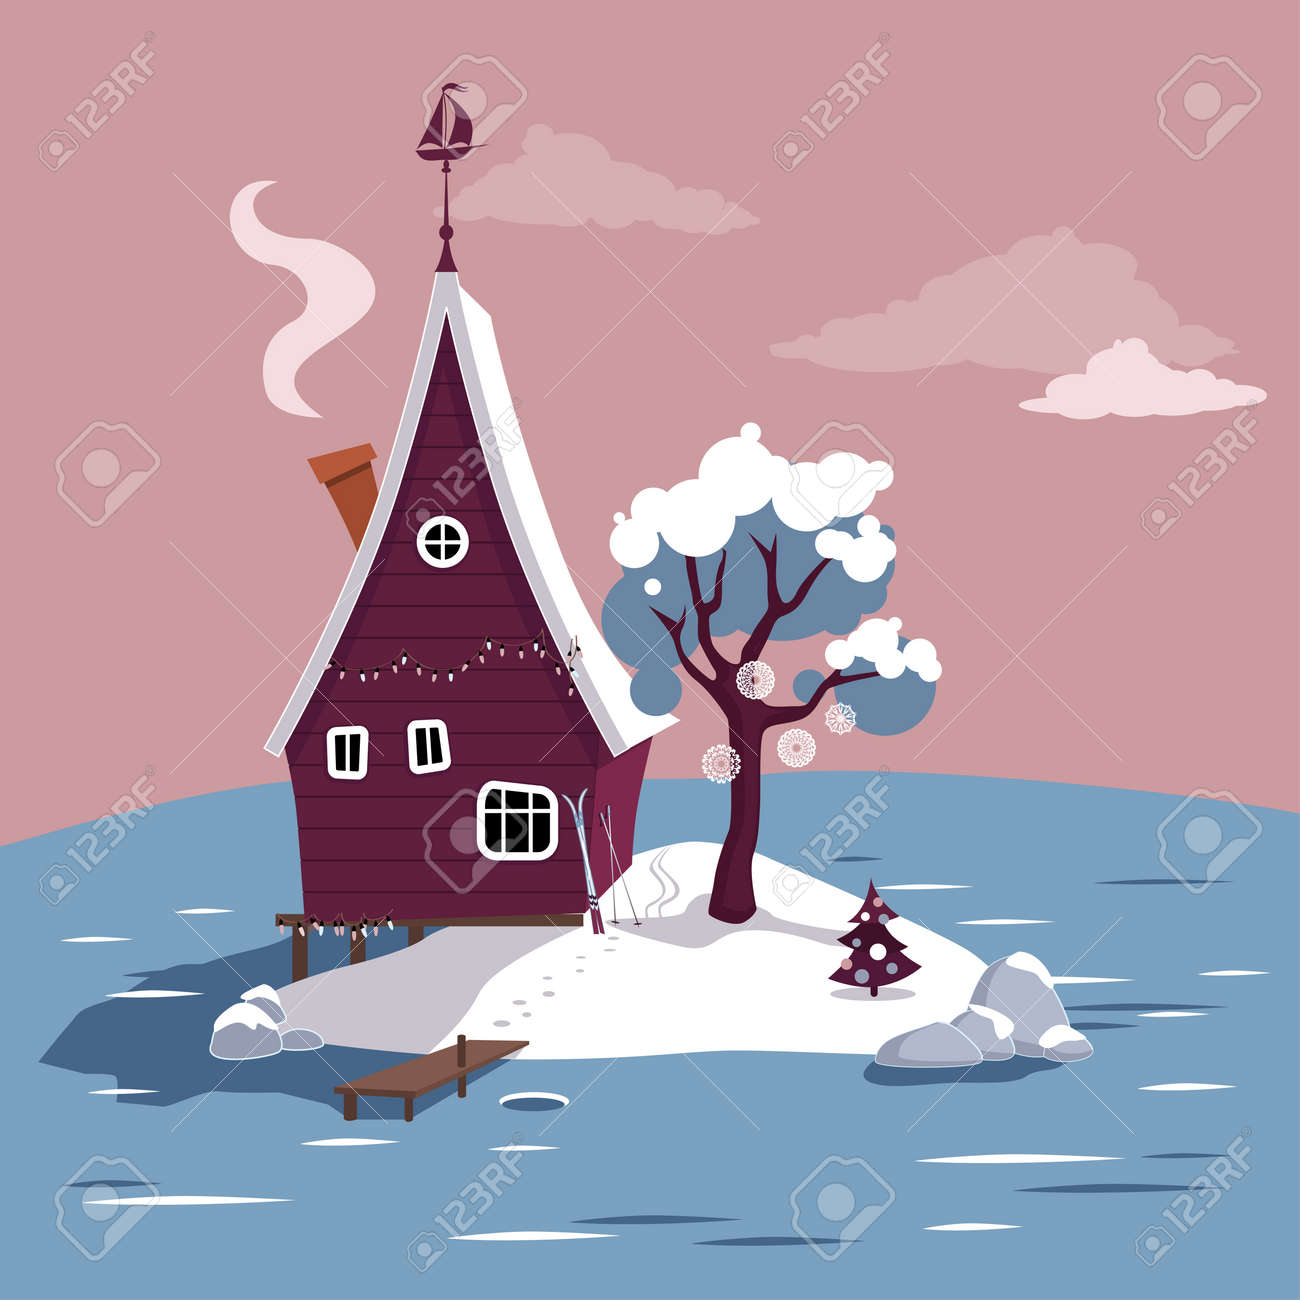 winter scene with a cartoon house on a small island in the middle